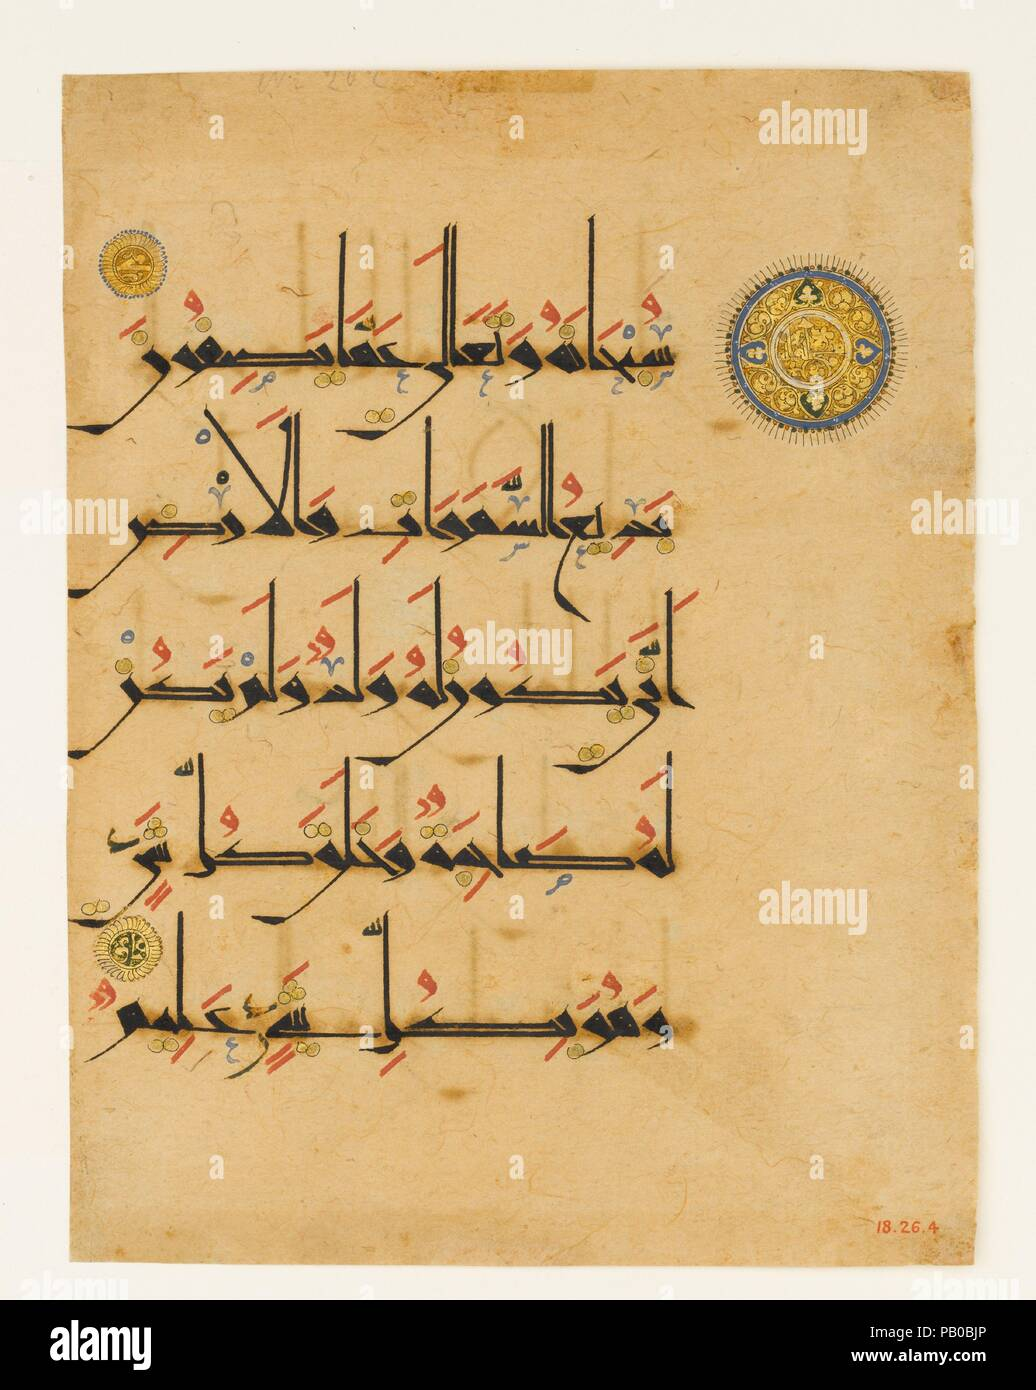 "Folio from a Qur'an Manuscript. Dimensions: H.10 in. (25.4 cm)  W. 7 1/4 in. (18.4 cm). Date: late 11th-12th century.  This folio from a Qur'an is written on paper in black new style script, with vocalizations in red, diacritical marks in gold, and other orthographical signs in blue and black. The golden medallions are verse markers: the smaller ones contain letter numerals, while the larger one contains the words ""100 verses"" encircled by a band of trefoil scrolls, indicating the beginning of the 100th verse of Sura 6 (al-An'am, ""of the Cattle"").  Paper, a Chinese invention, was first produce Stock Photo"